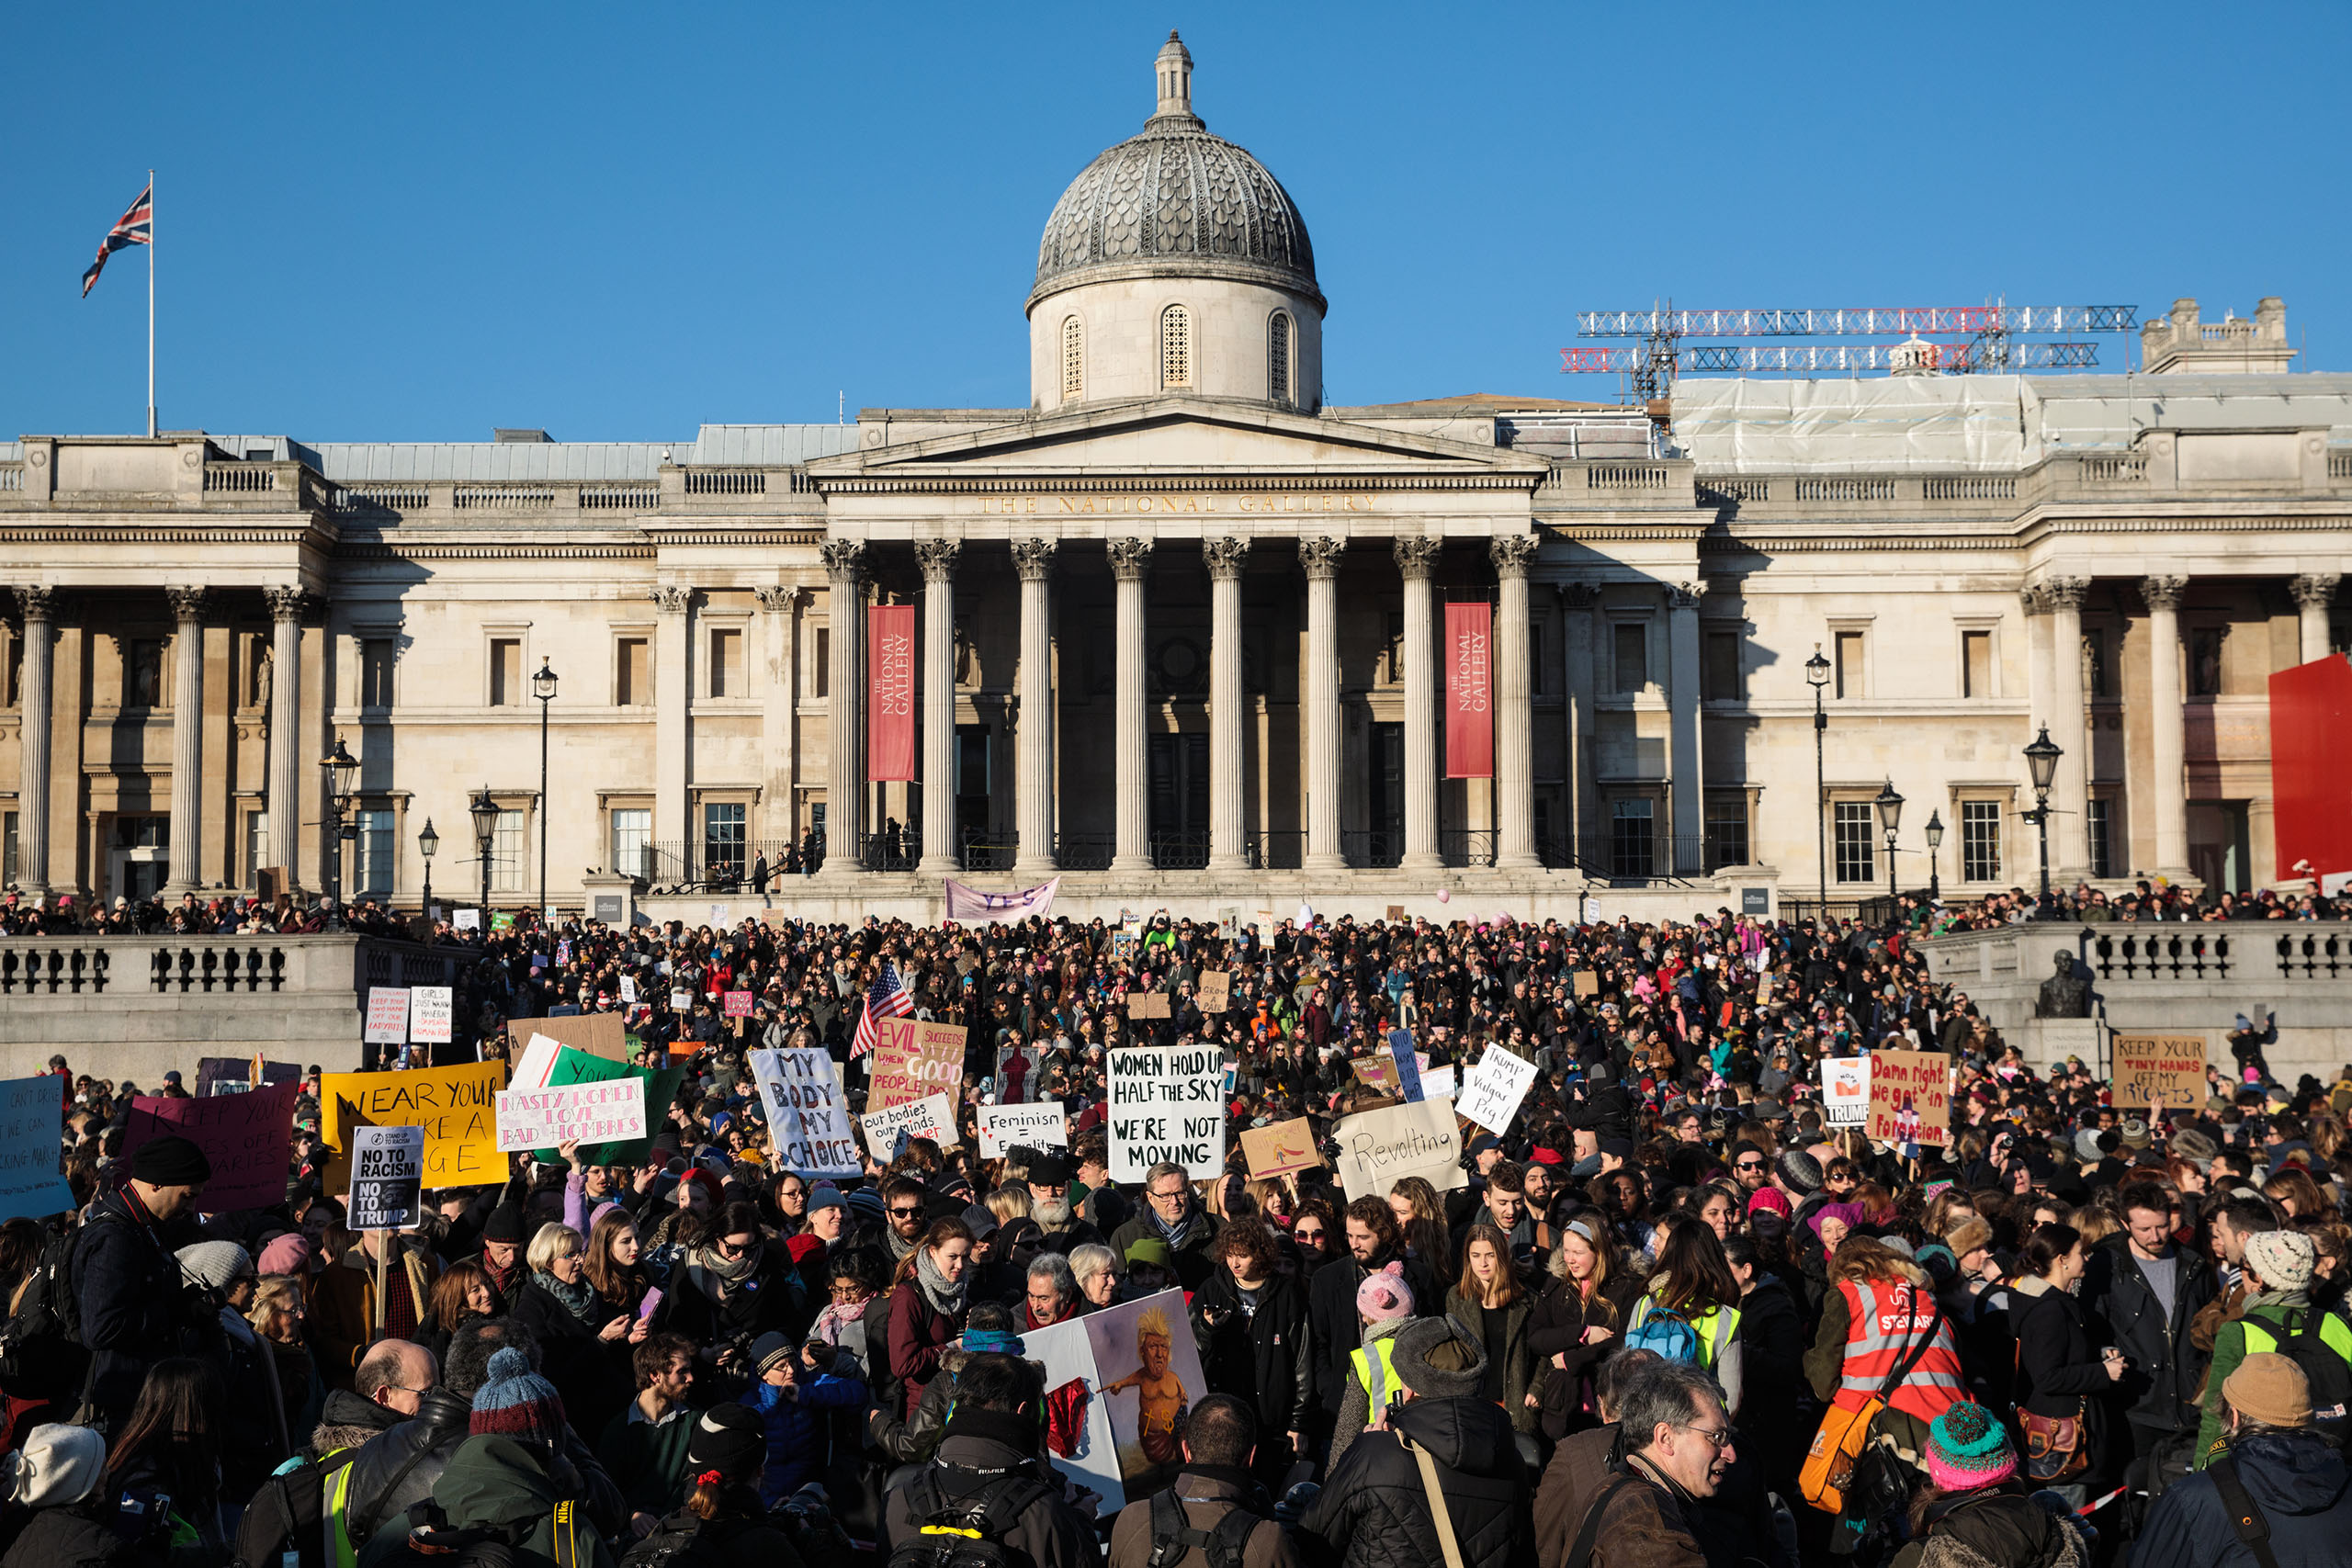 Thousands of protesters gather in Trafalgar Square during the Women's March in London, England on Jan. 21, 2017.